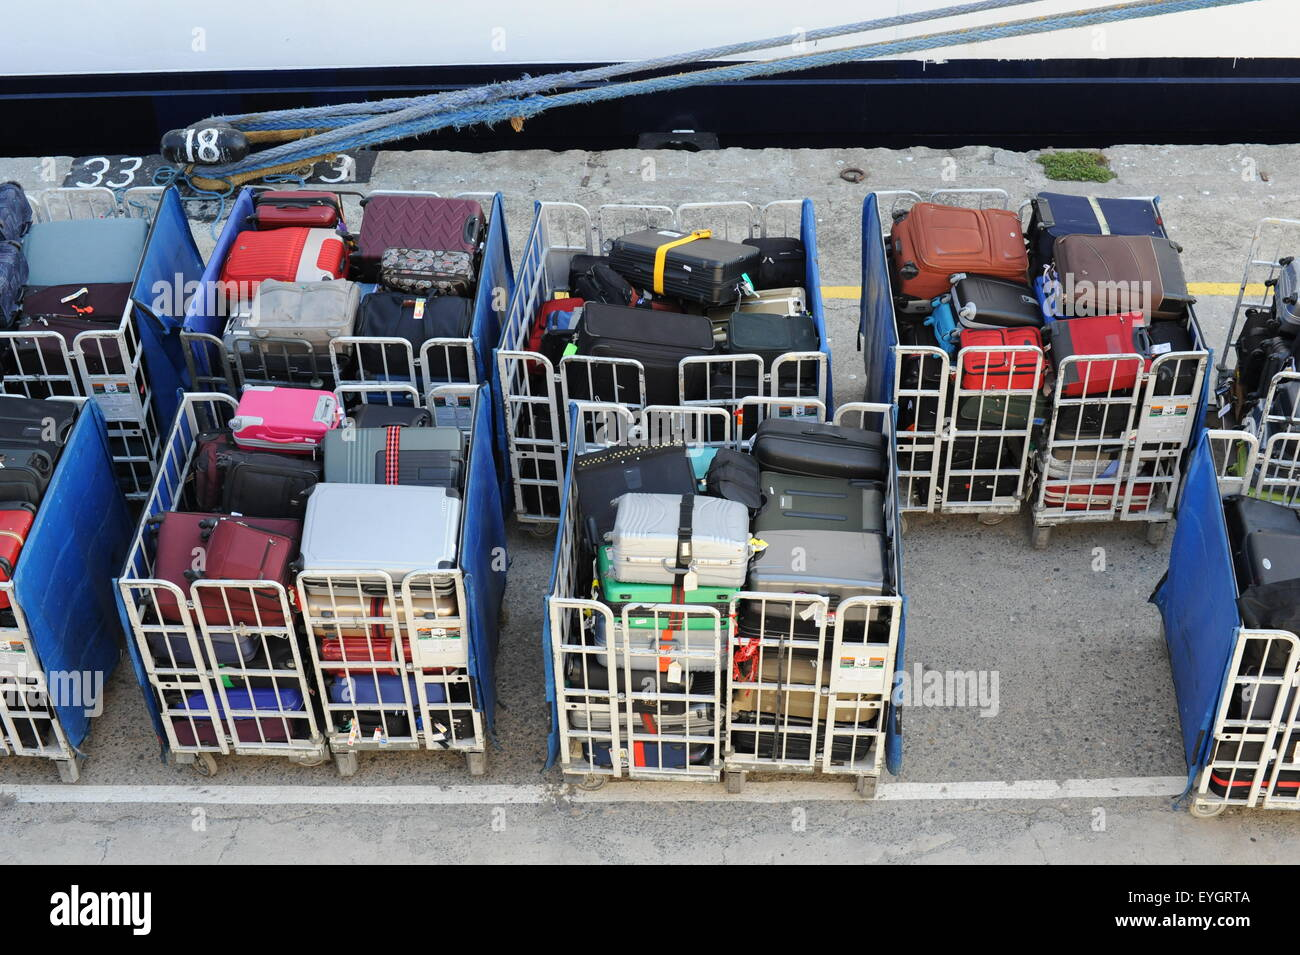 Colorfull suitcases in waggons to be boarded on a cruiseship passenger's luggage Kreuzfahrt Gepäck Koffer - Stock Image